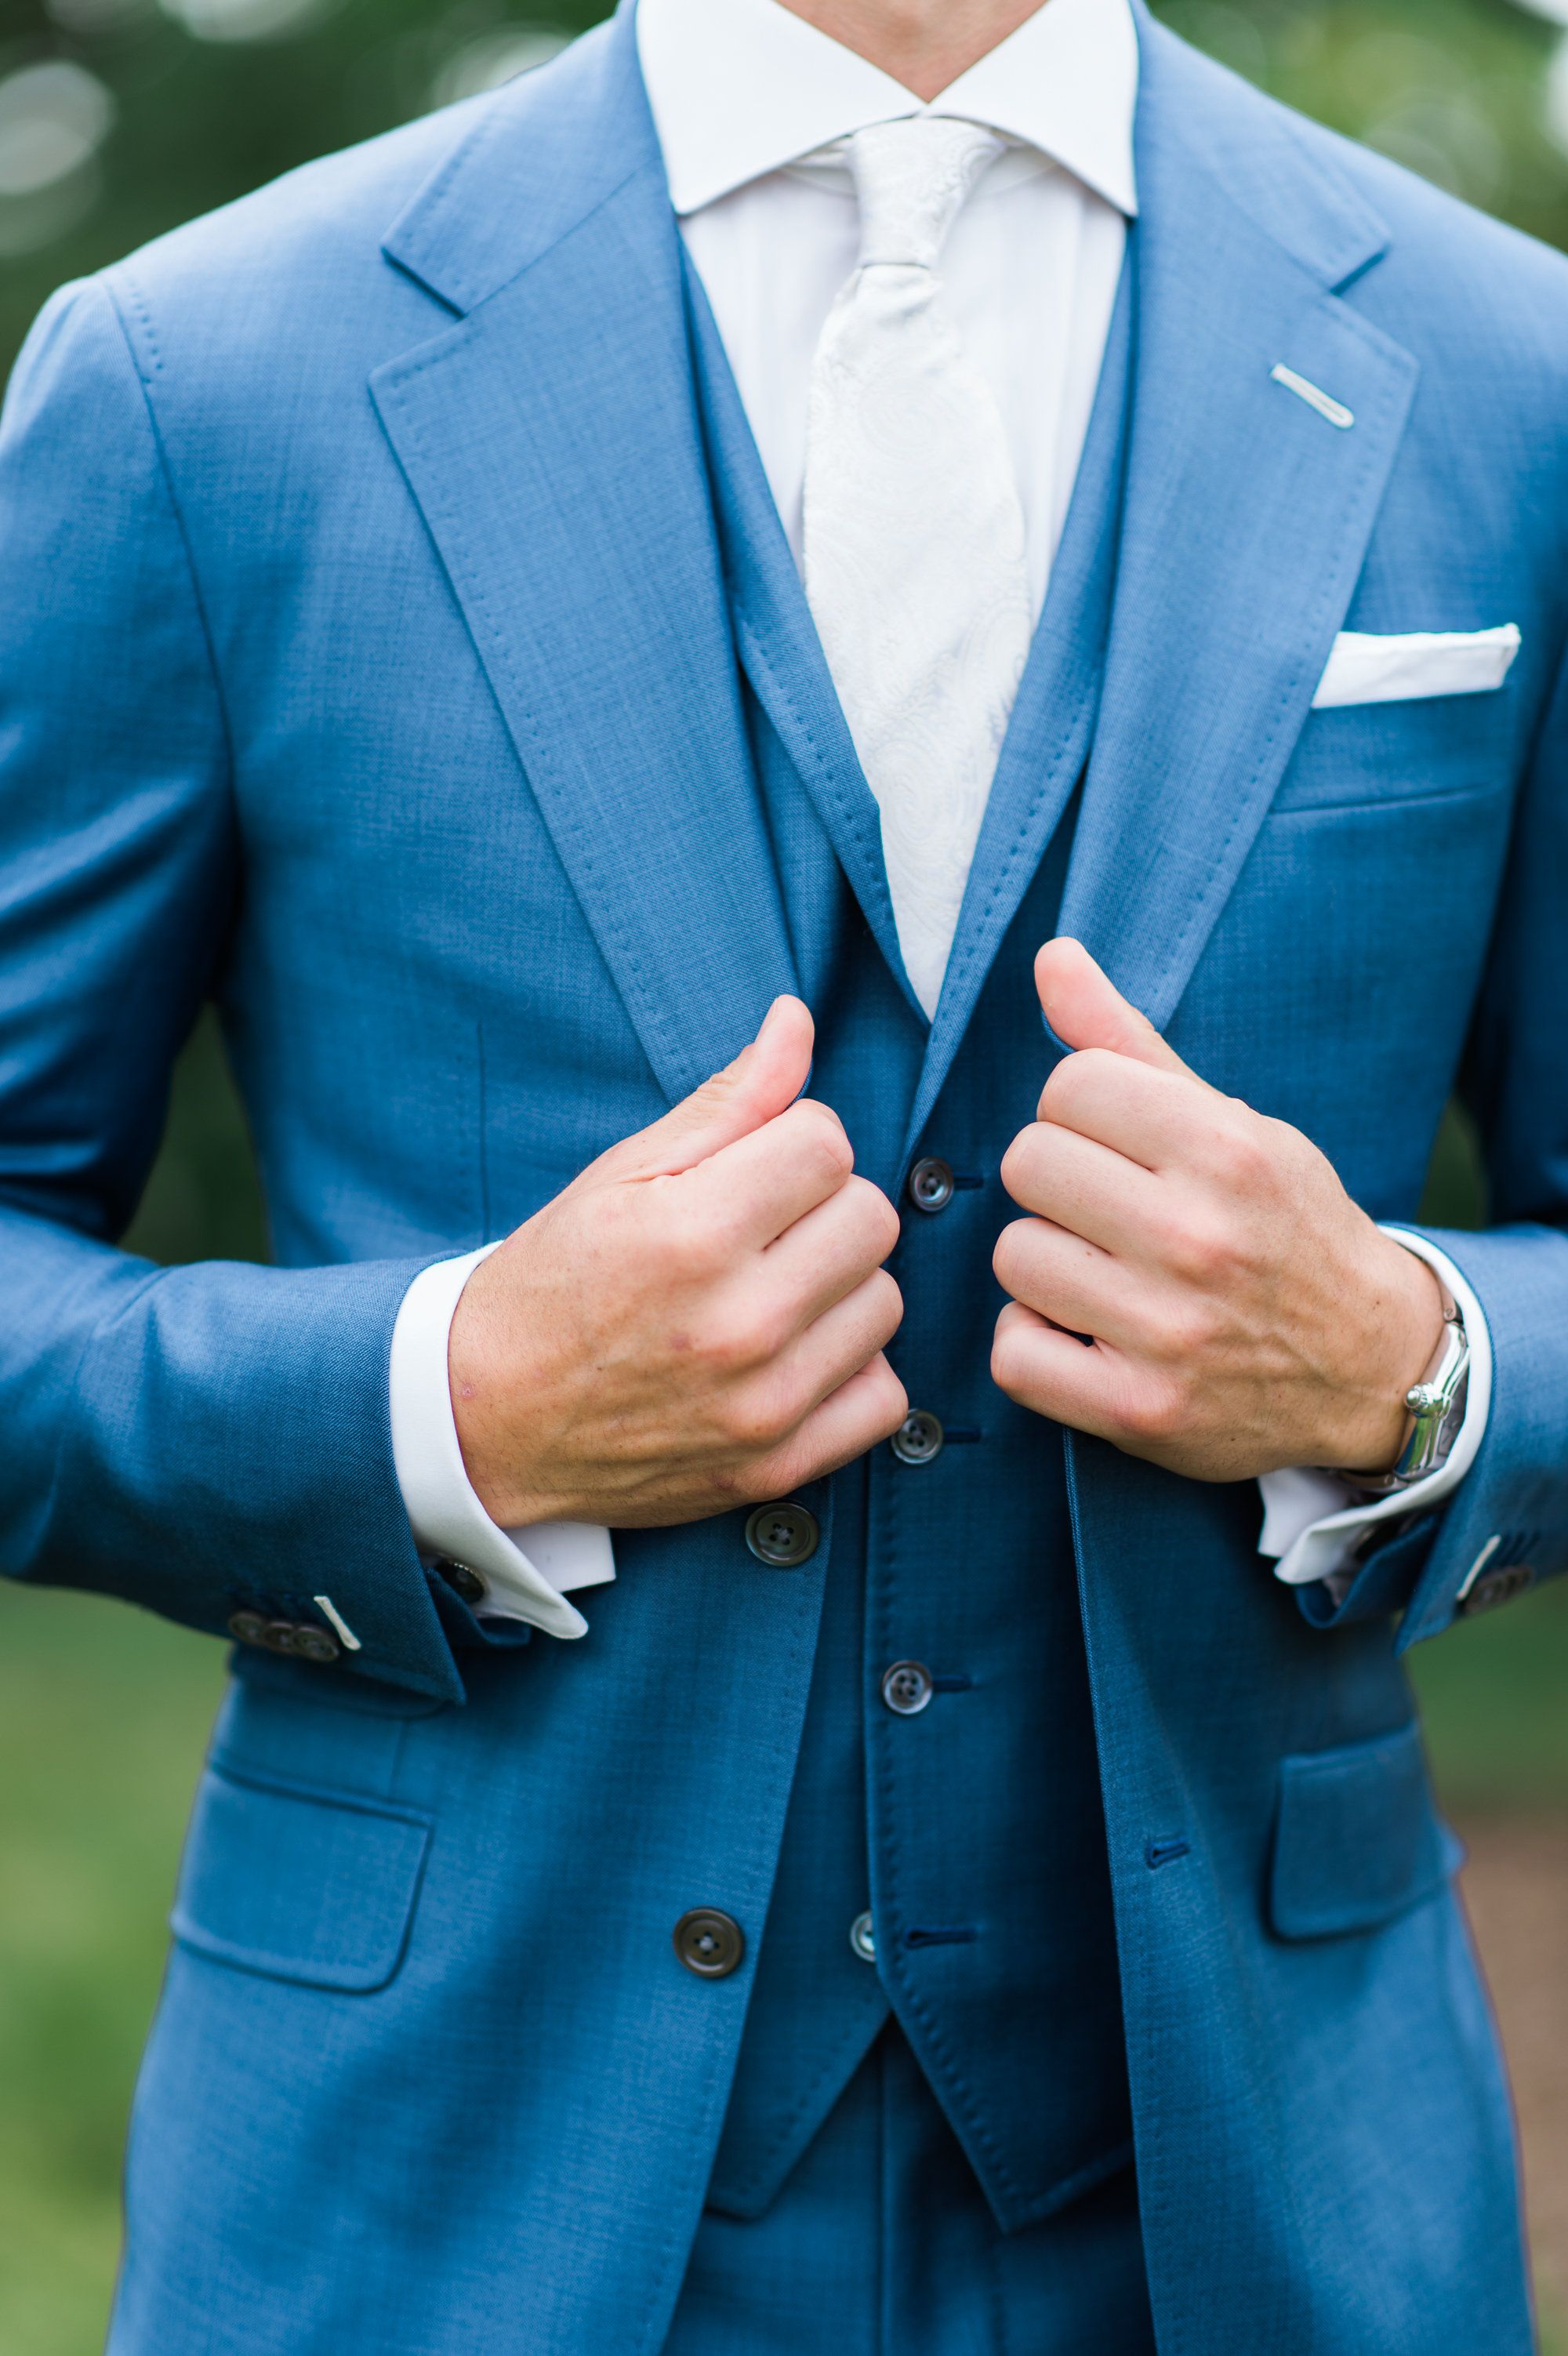 Admiral blue 3 piece sharkskin suit by Daniel George | Wedding Inspo ...